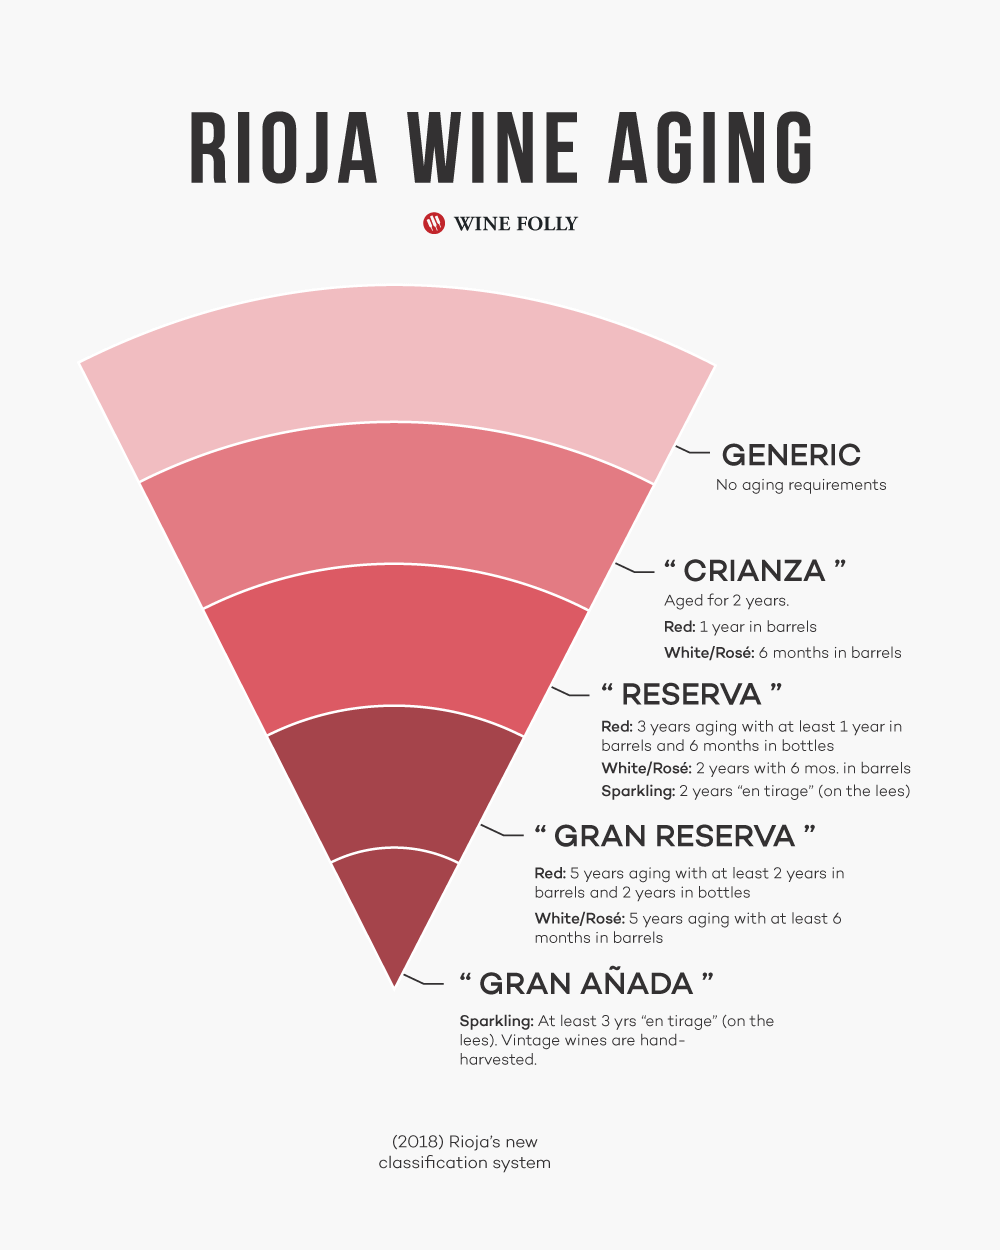 Rioja Wine New Aging Classification system including Crianza, Reserva, Gran Reserva, and Gran Anada